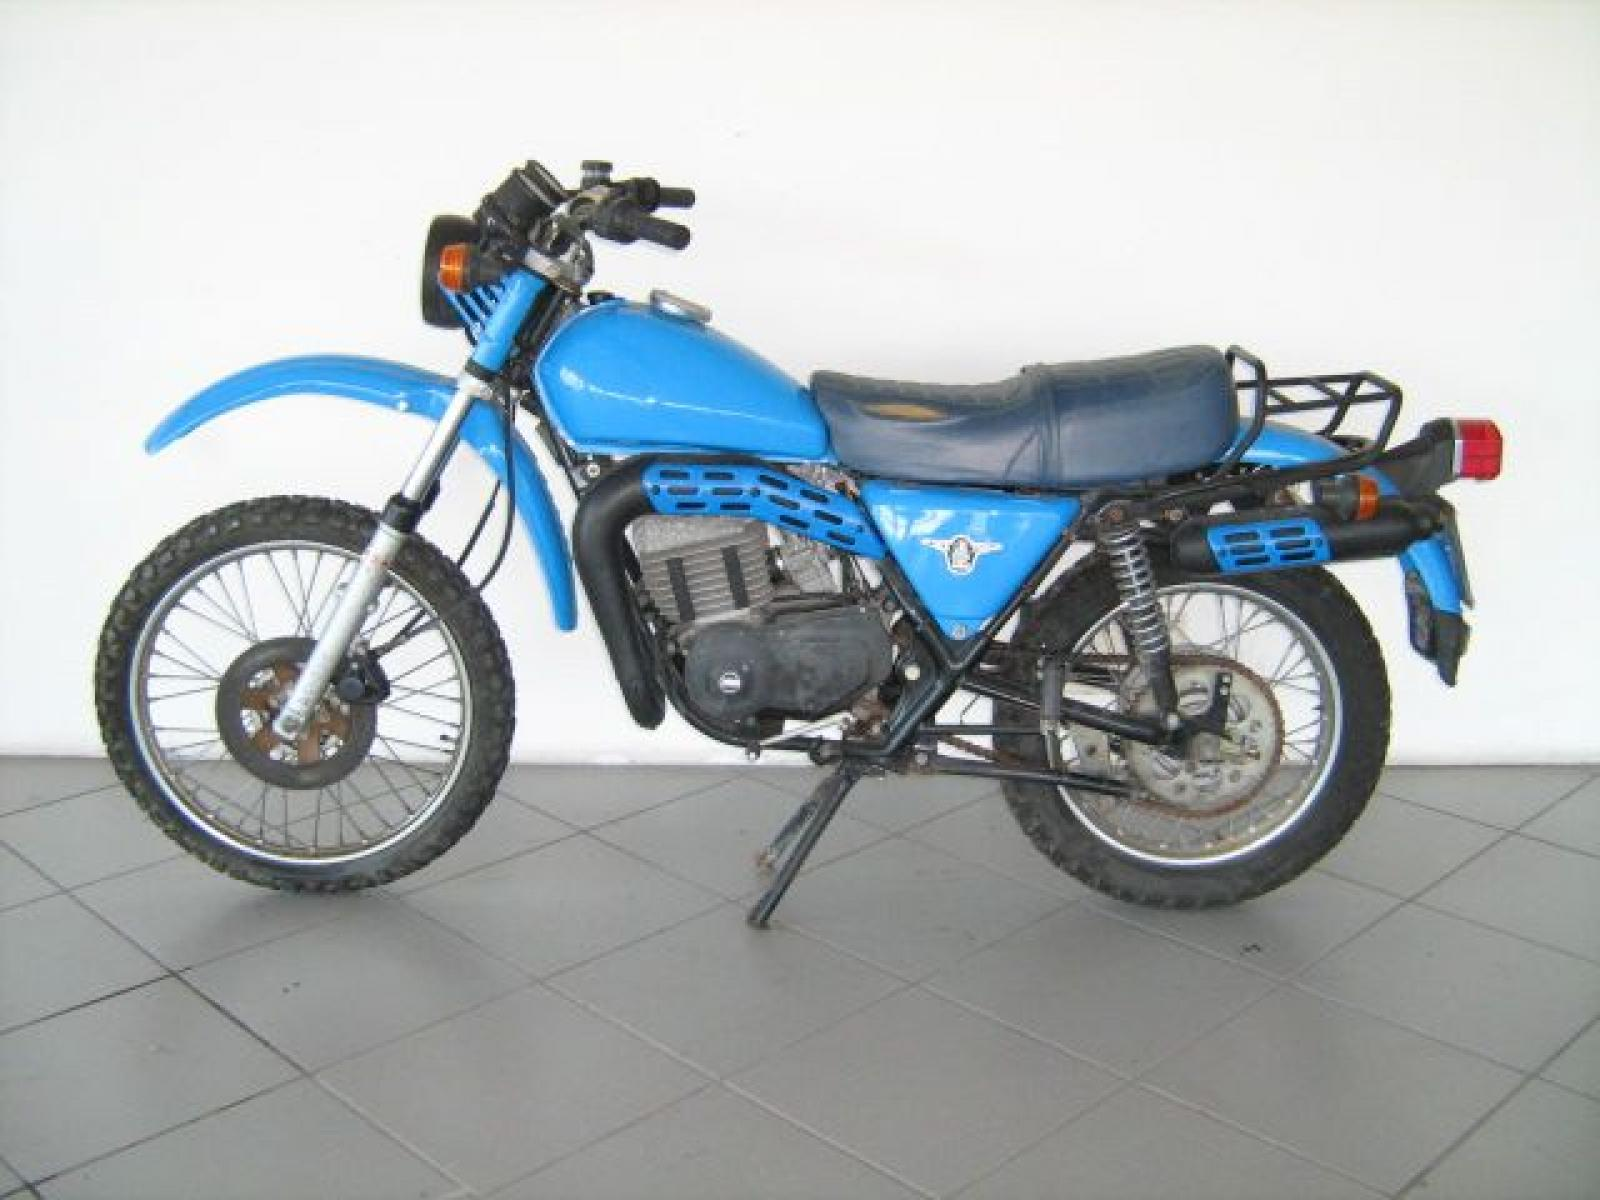 Cagiva SX 350 1980 images #68561